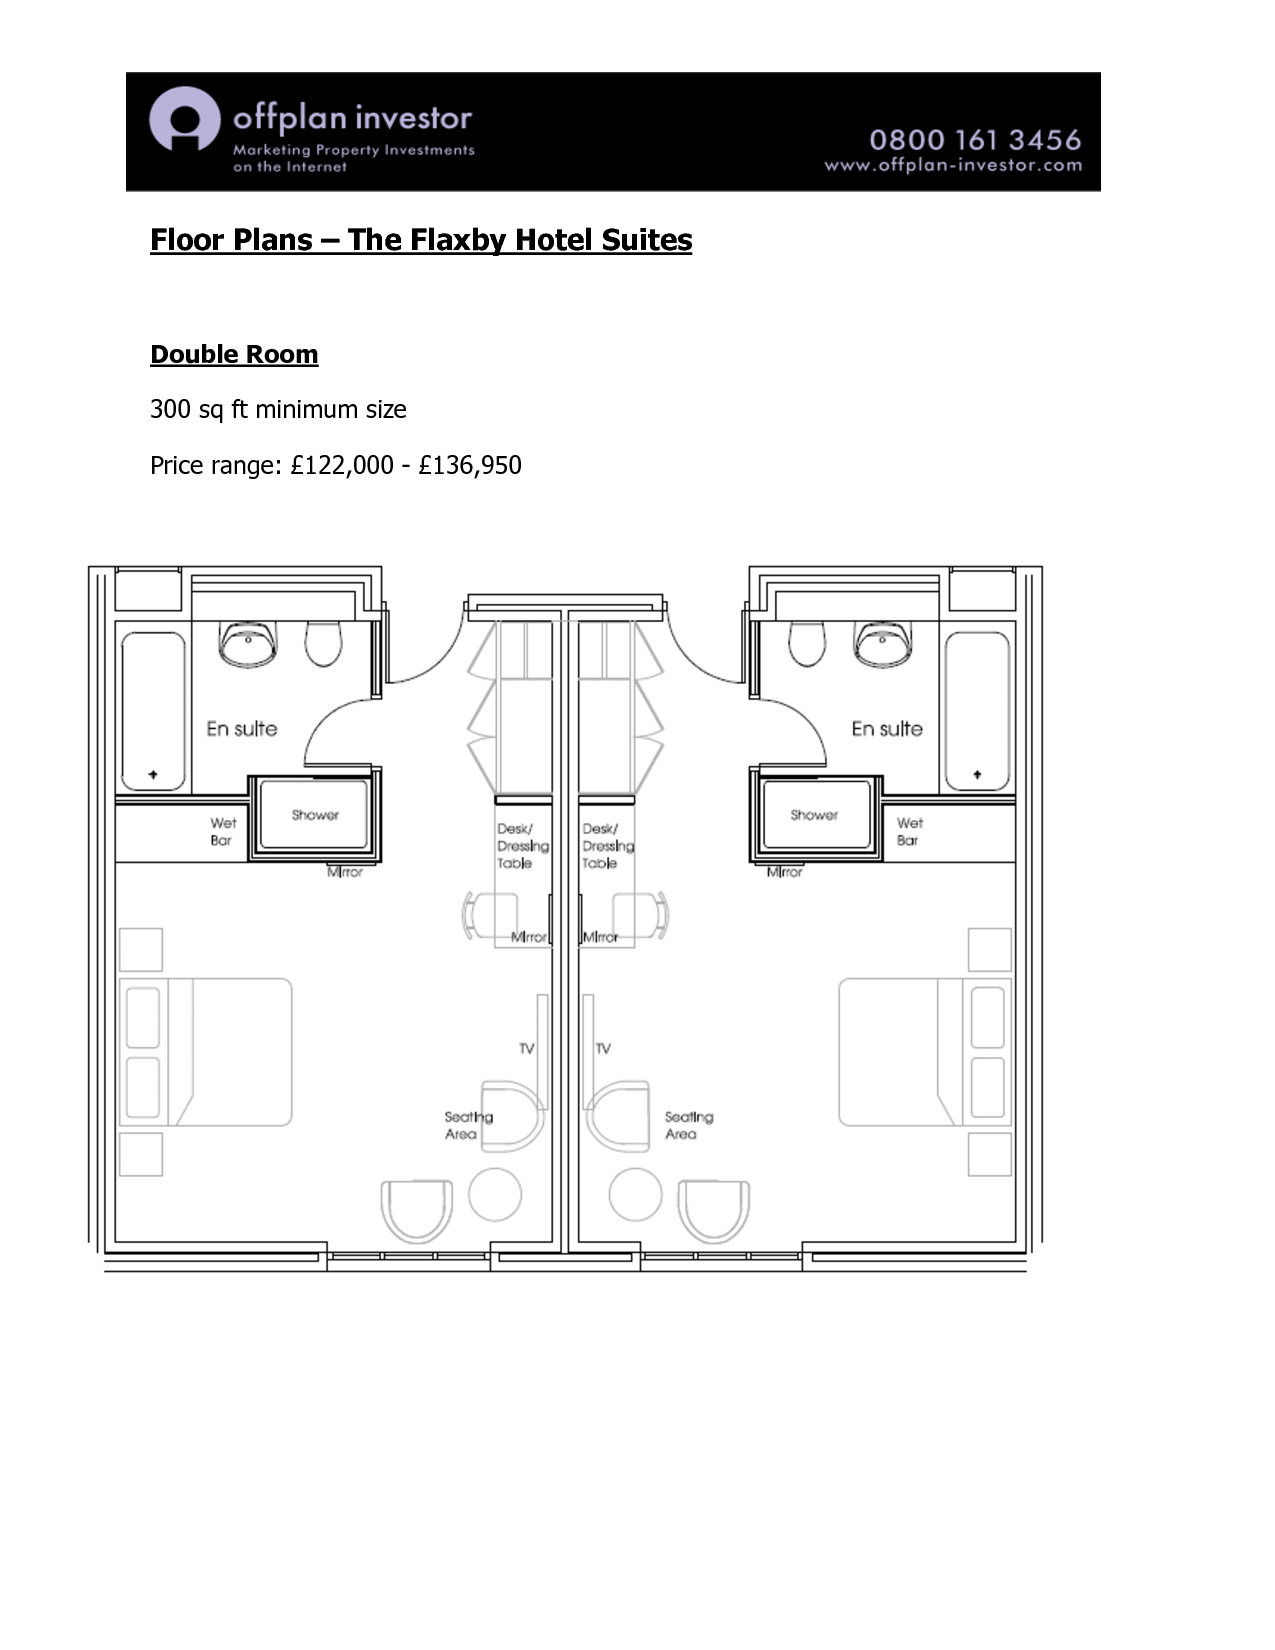 Plan Chambre Hotel Hotel Room Floor Plans Floor Plans The Flaxby Hotel